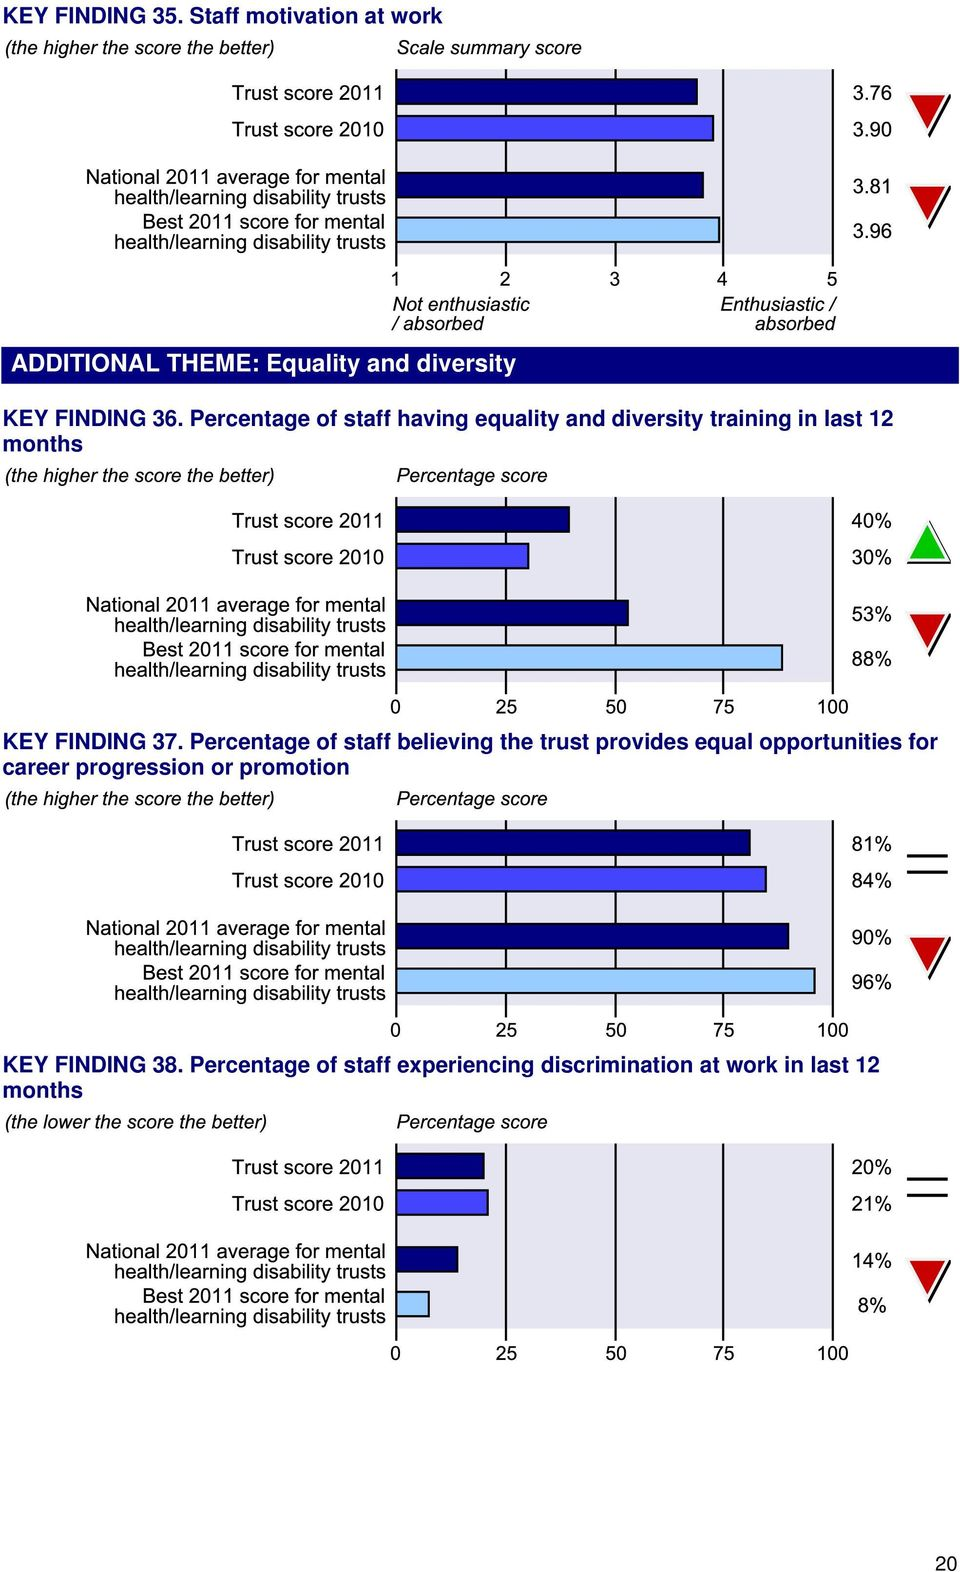 Percentage of staff believing the trust provides equal opportunities for career progression or